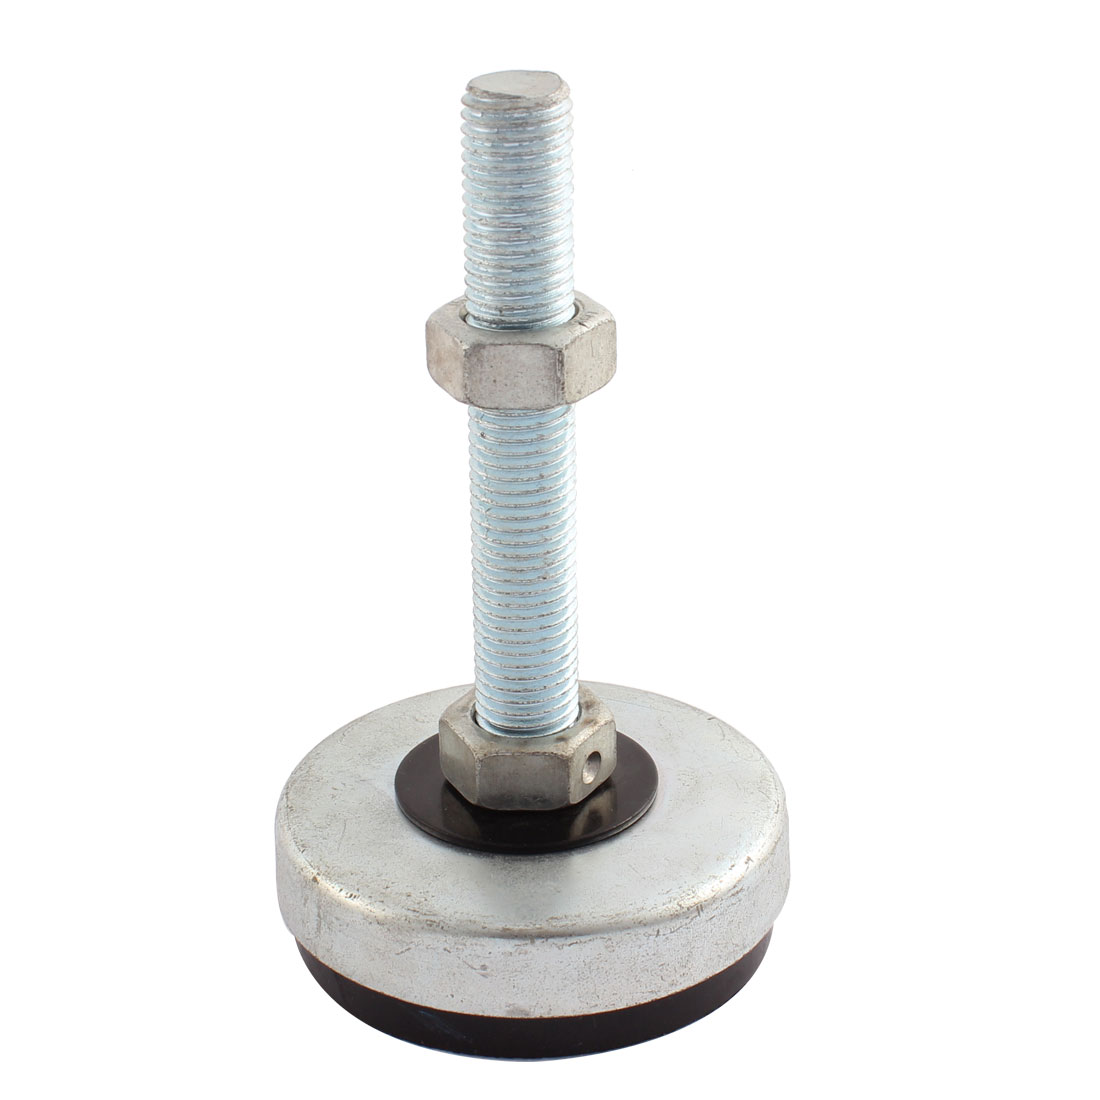 Machine Furniture M16 x 100mm Thread 80mm Base Leveling Foot Mount